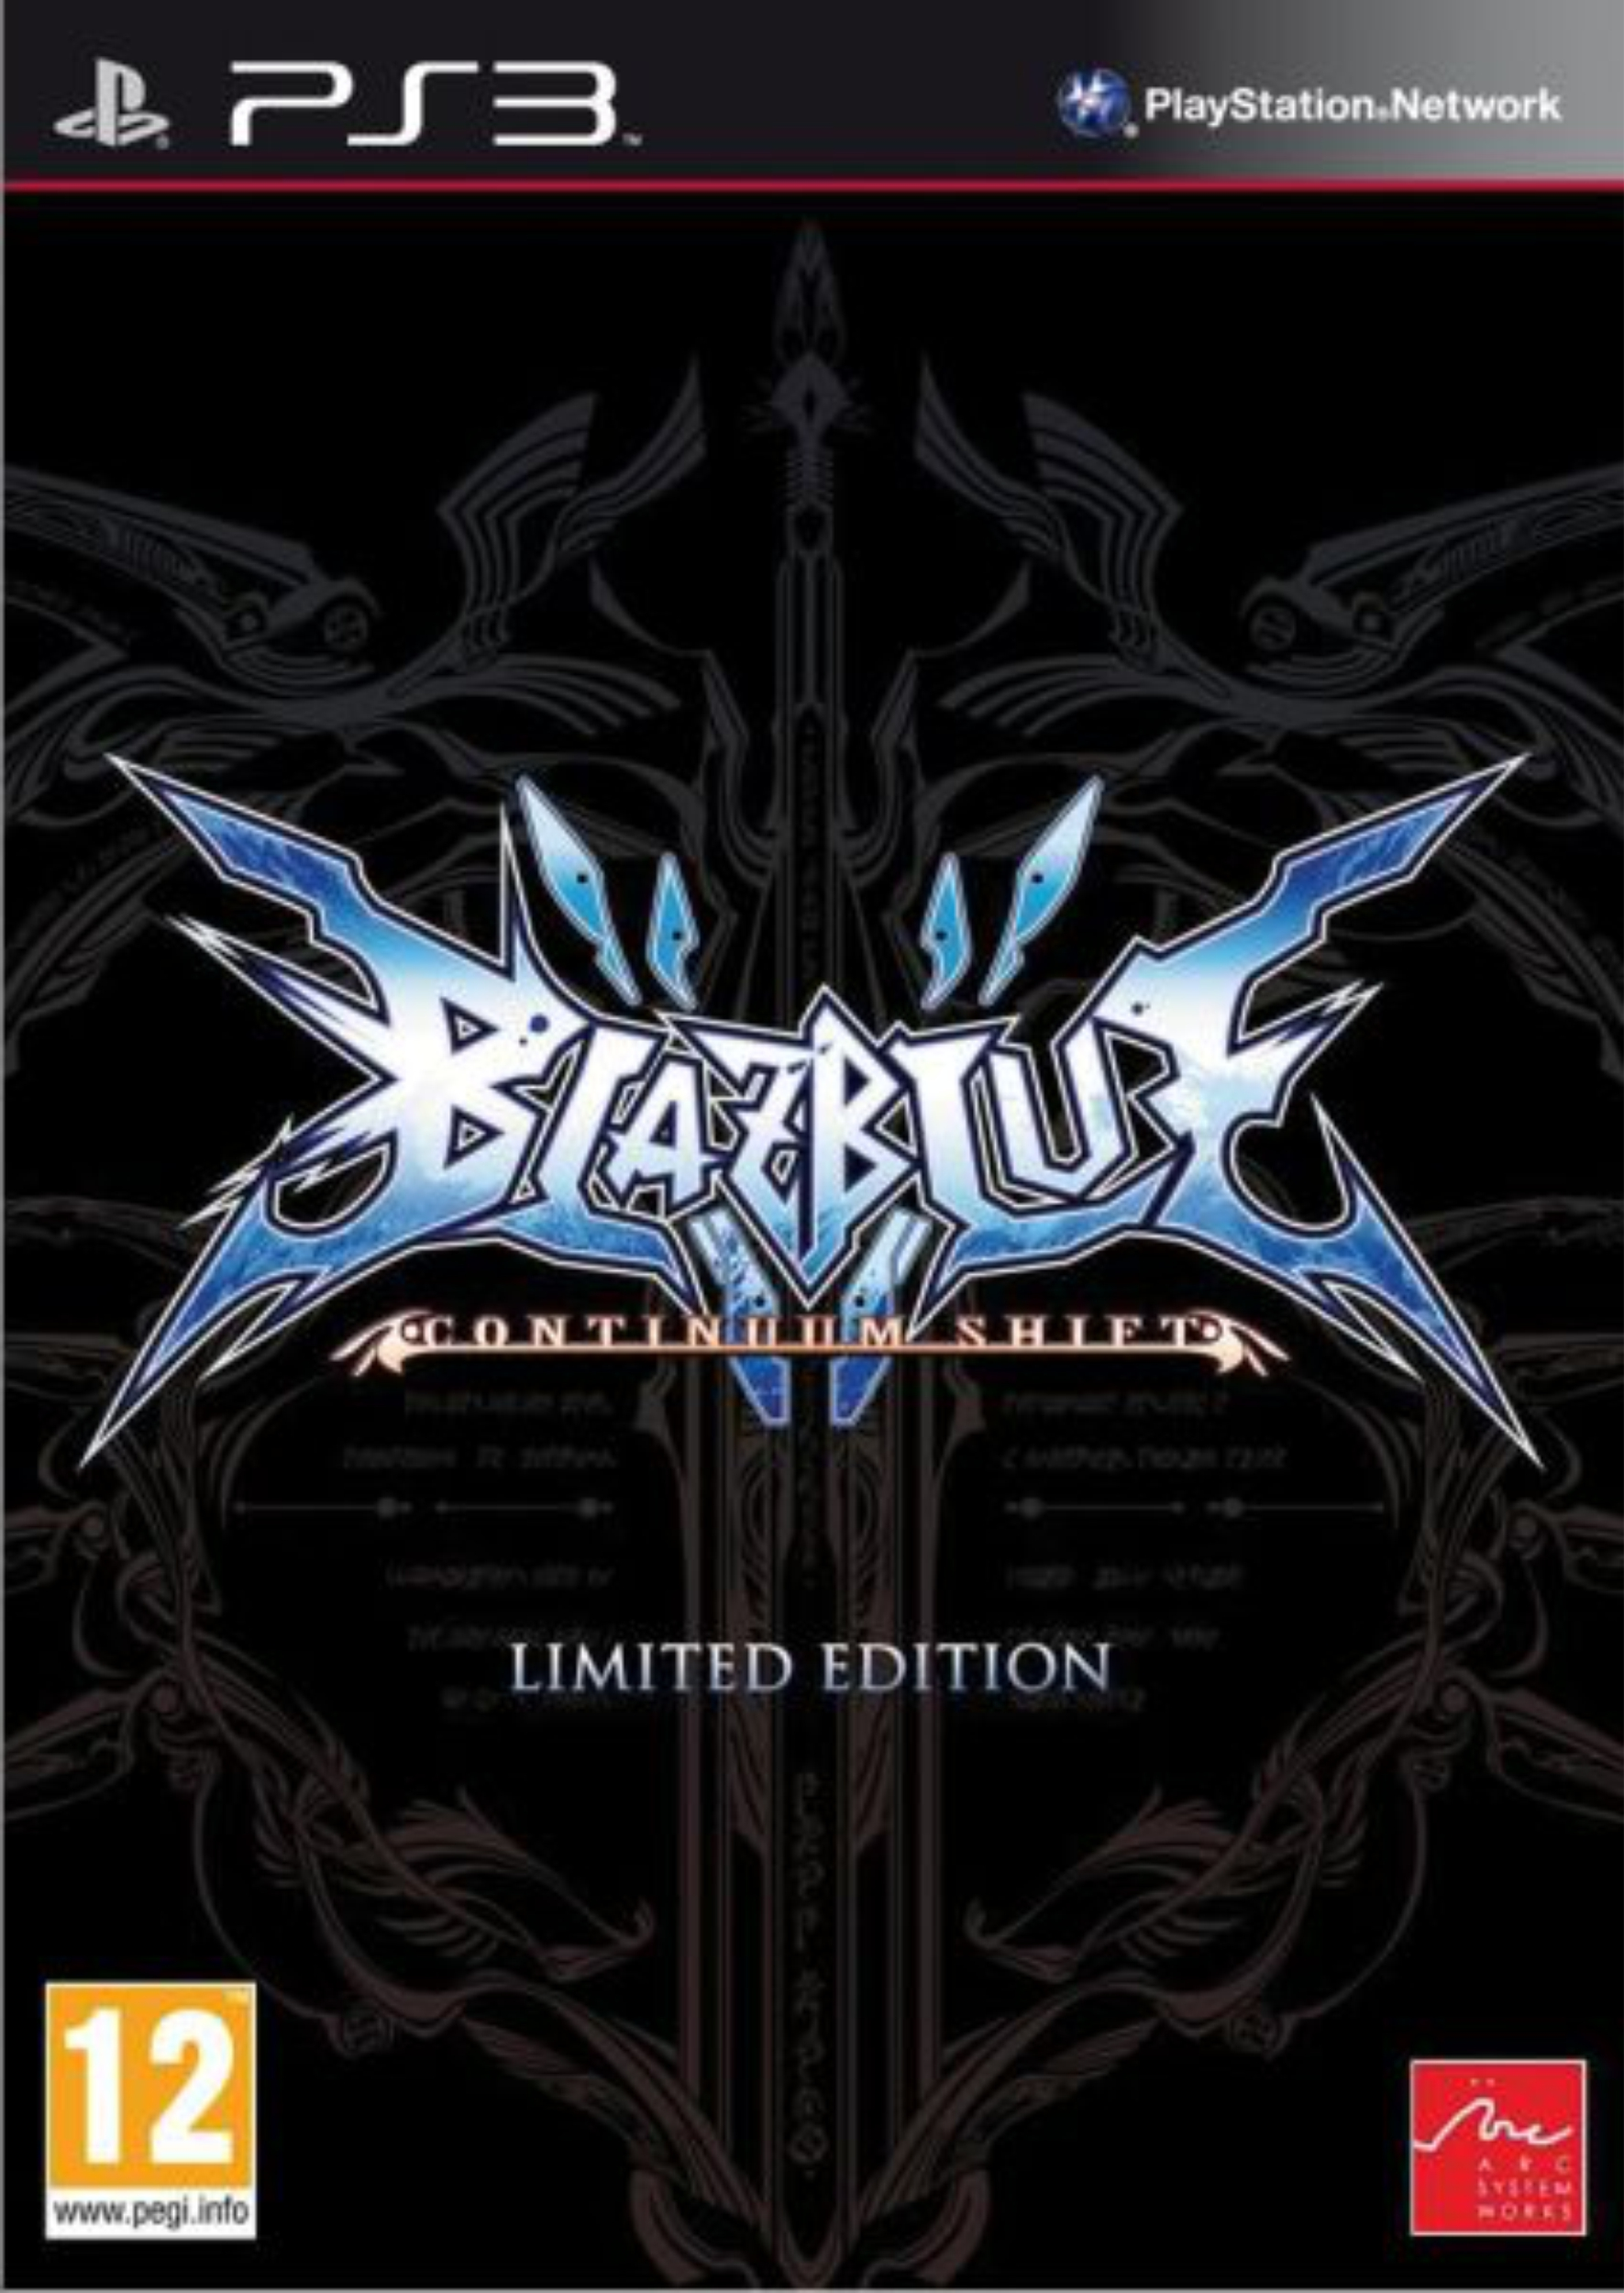 PS3 BlazBlue: Continuum Shift - Limited Edition